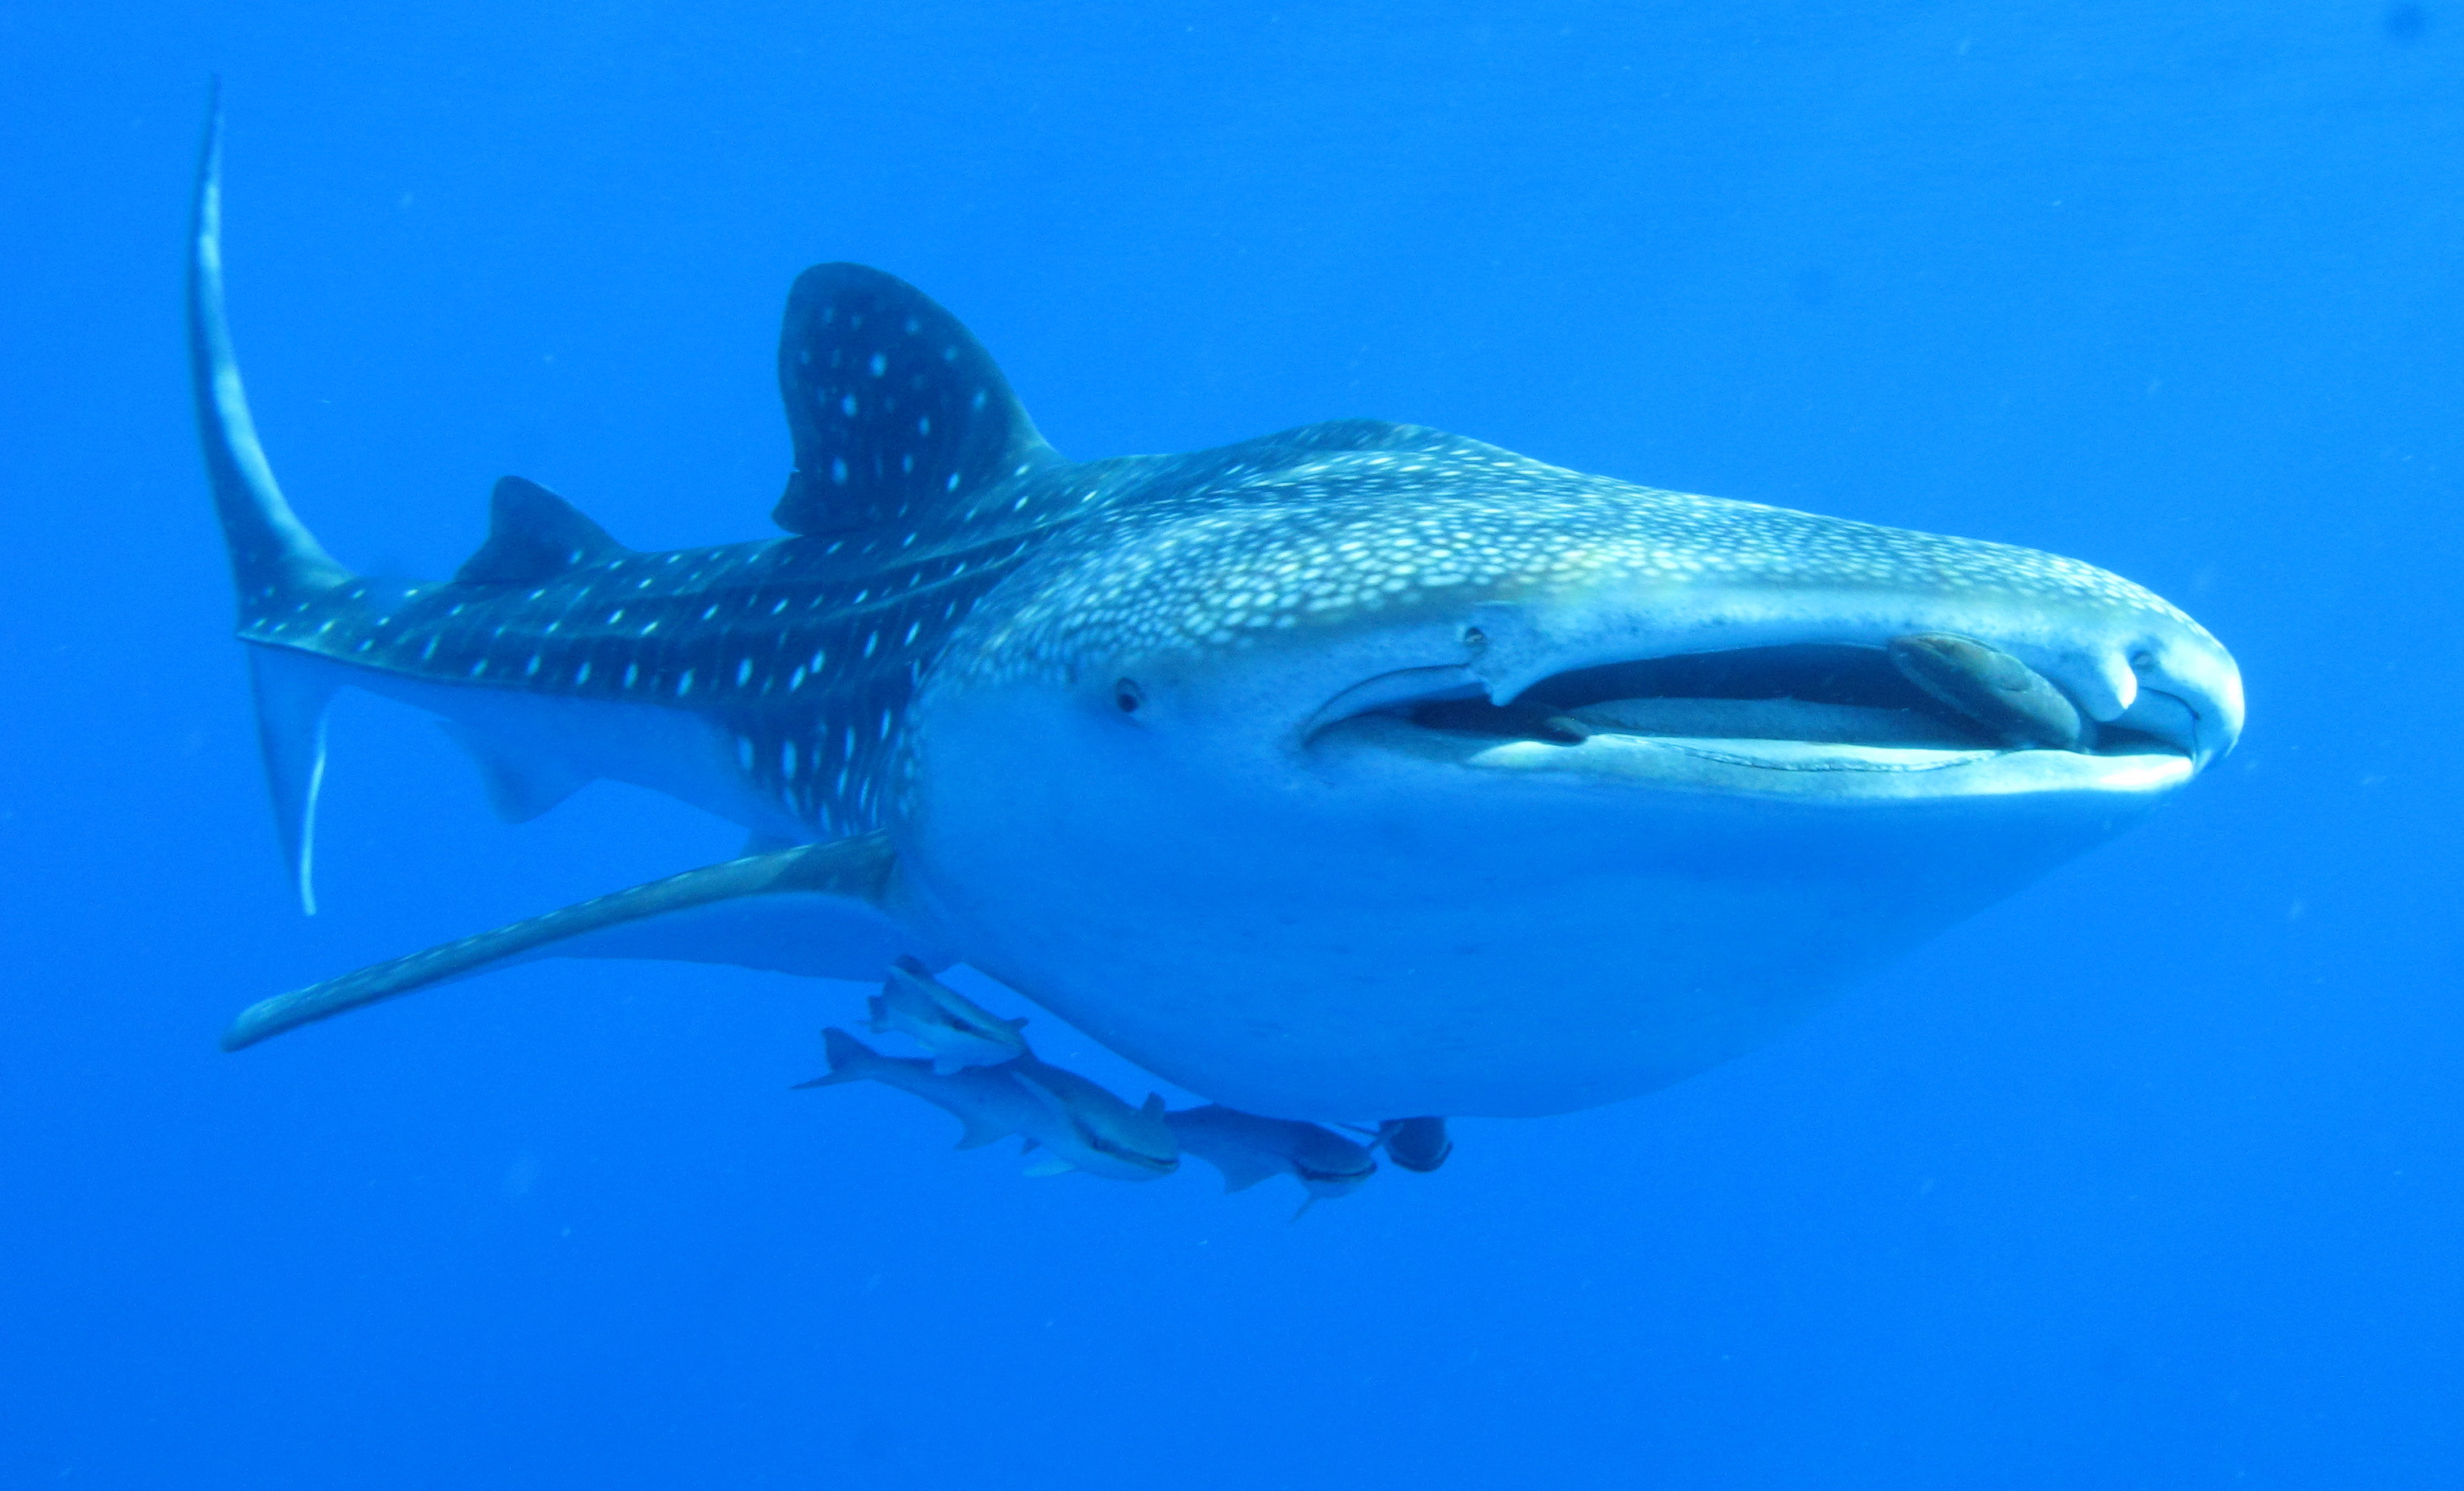 The whale shark is the world's largest fish specie. Photo credit: Derek Keats/Wikimedia Commons [Licensed under CC BY 2.0]